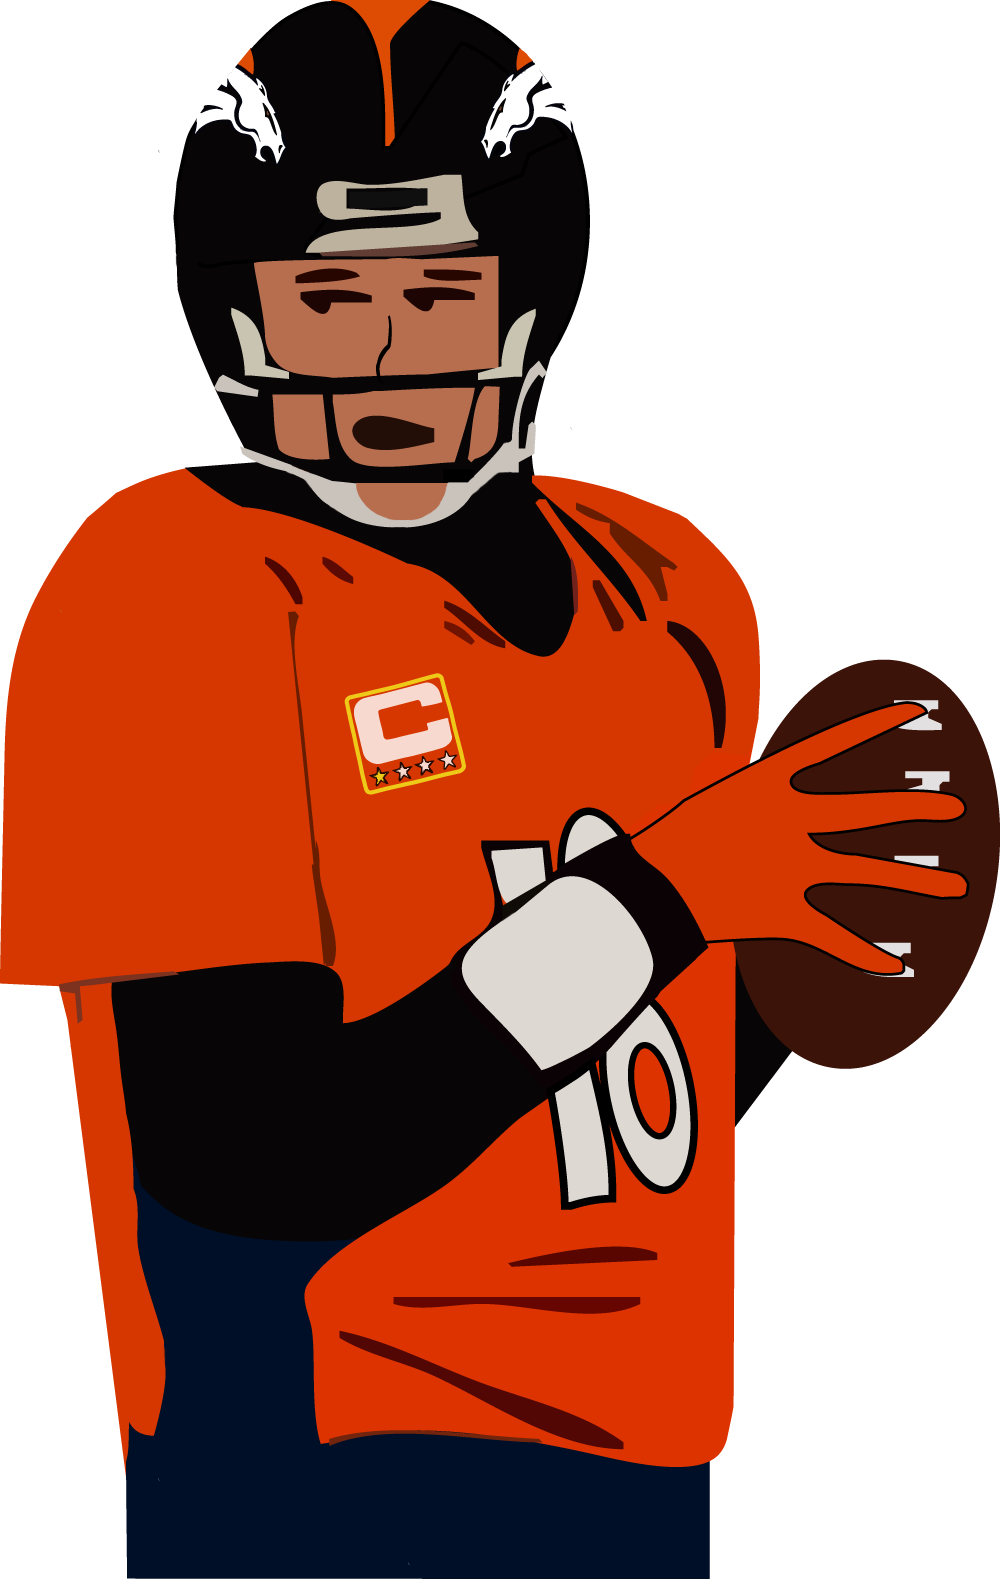 1000x1579 Super Bowl 50 Preview Panthers Vs. Broncos With Gazette And Star